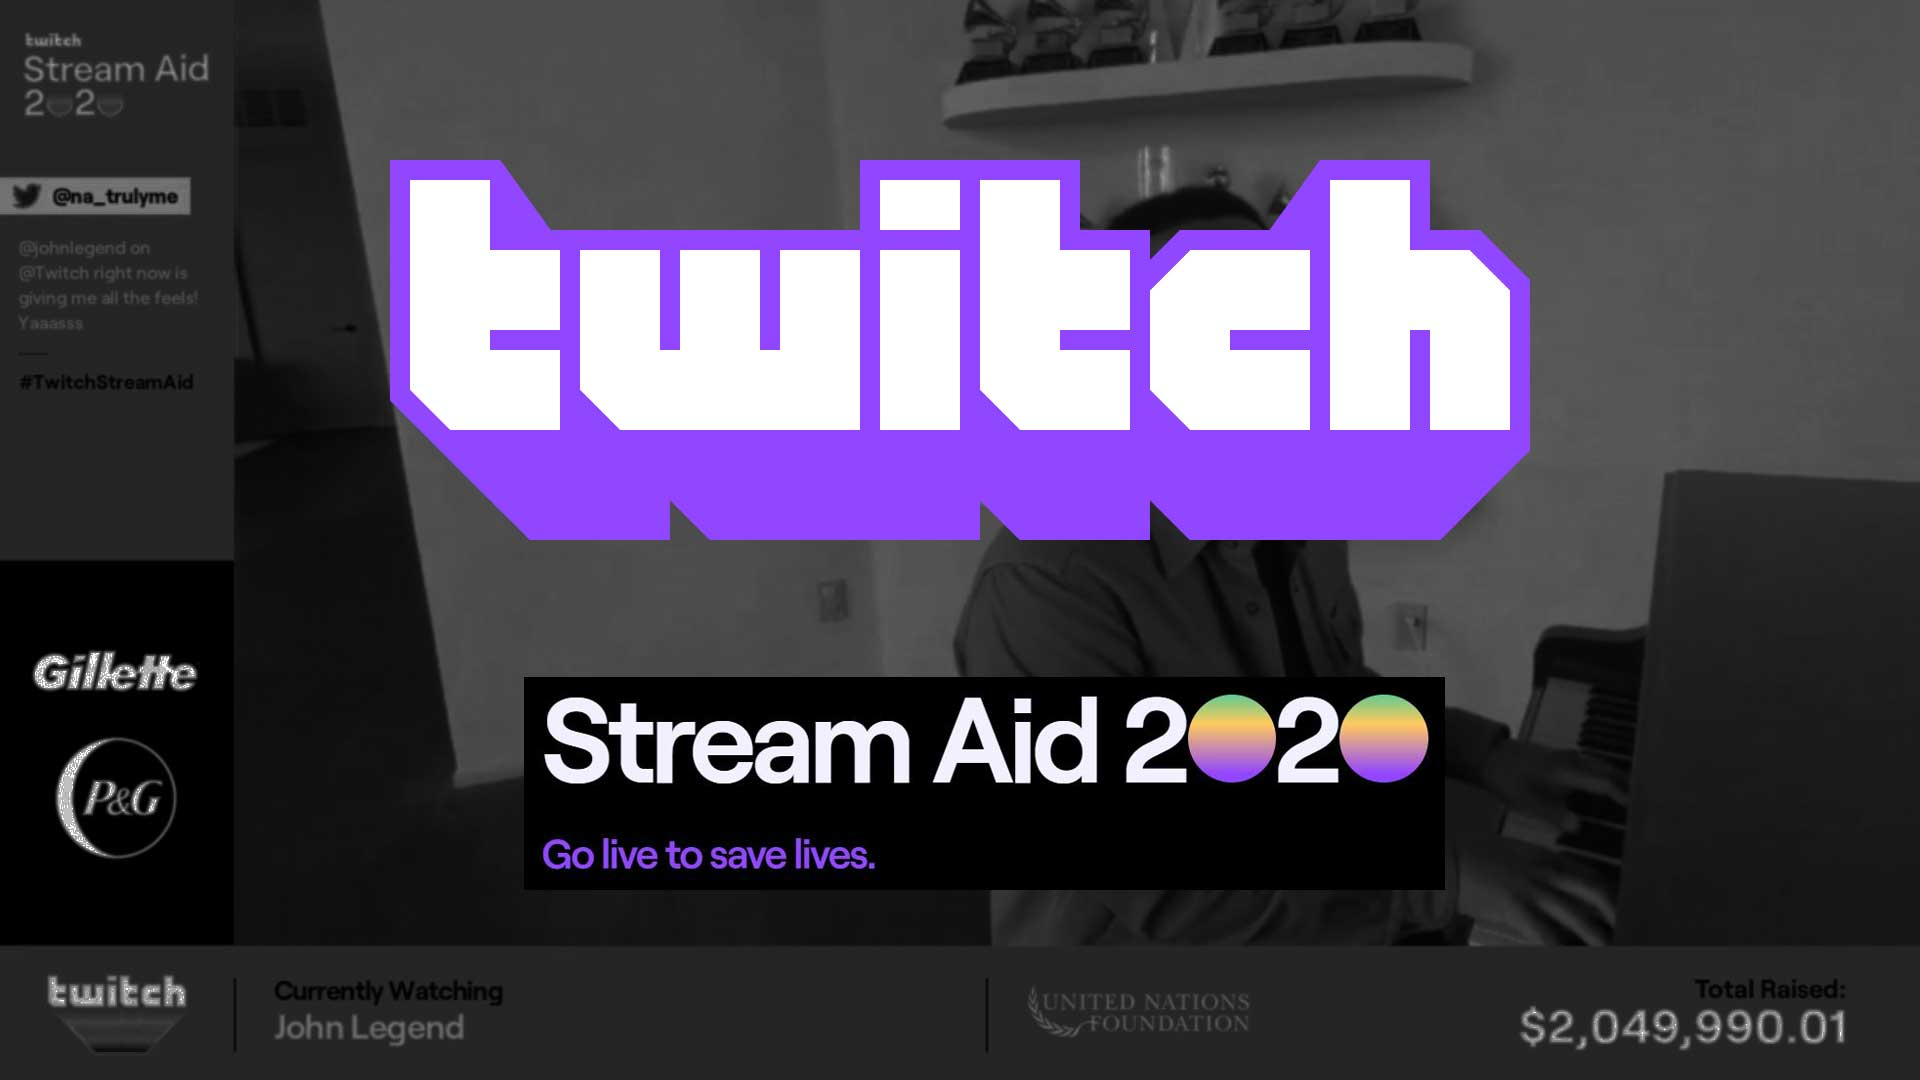 streaming aid 2020 babt